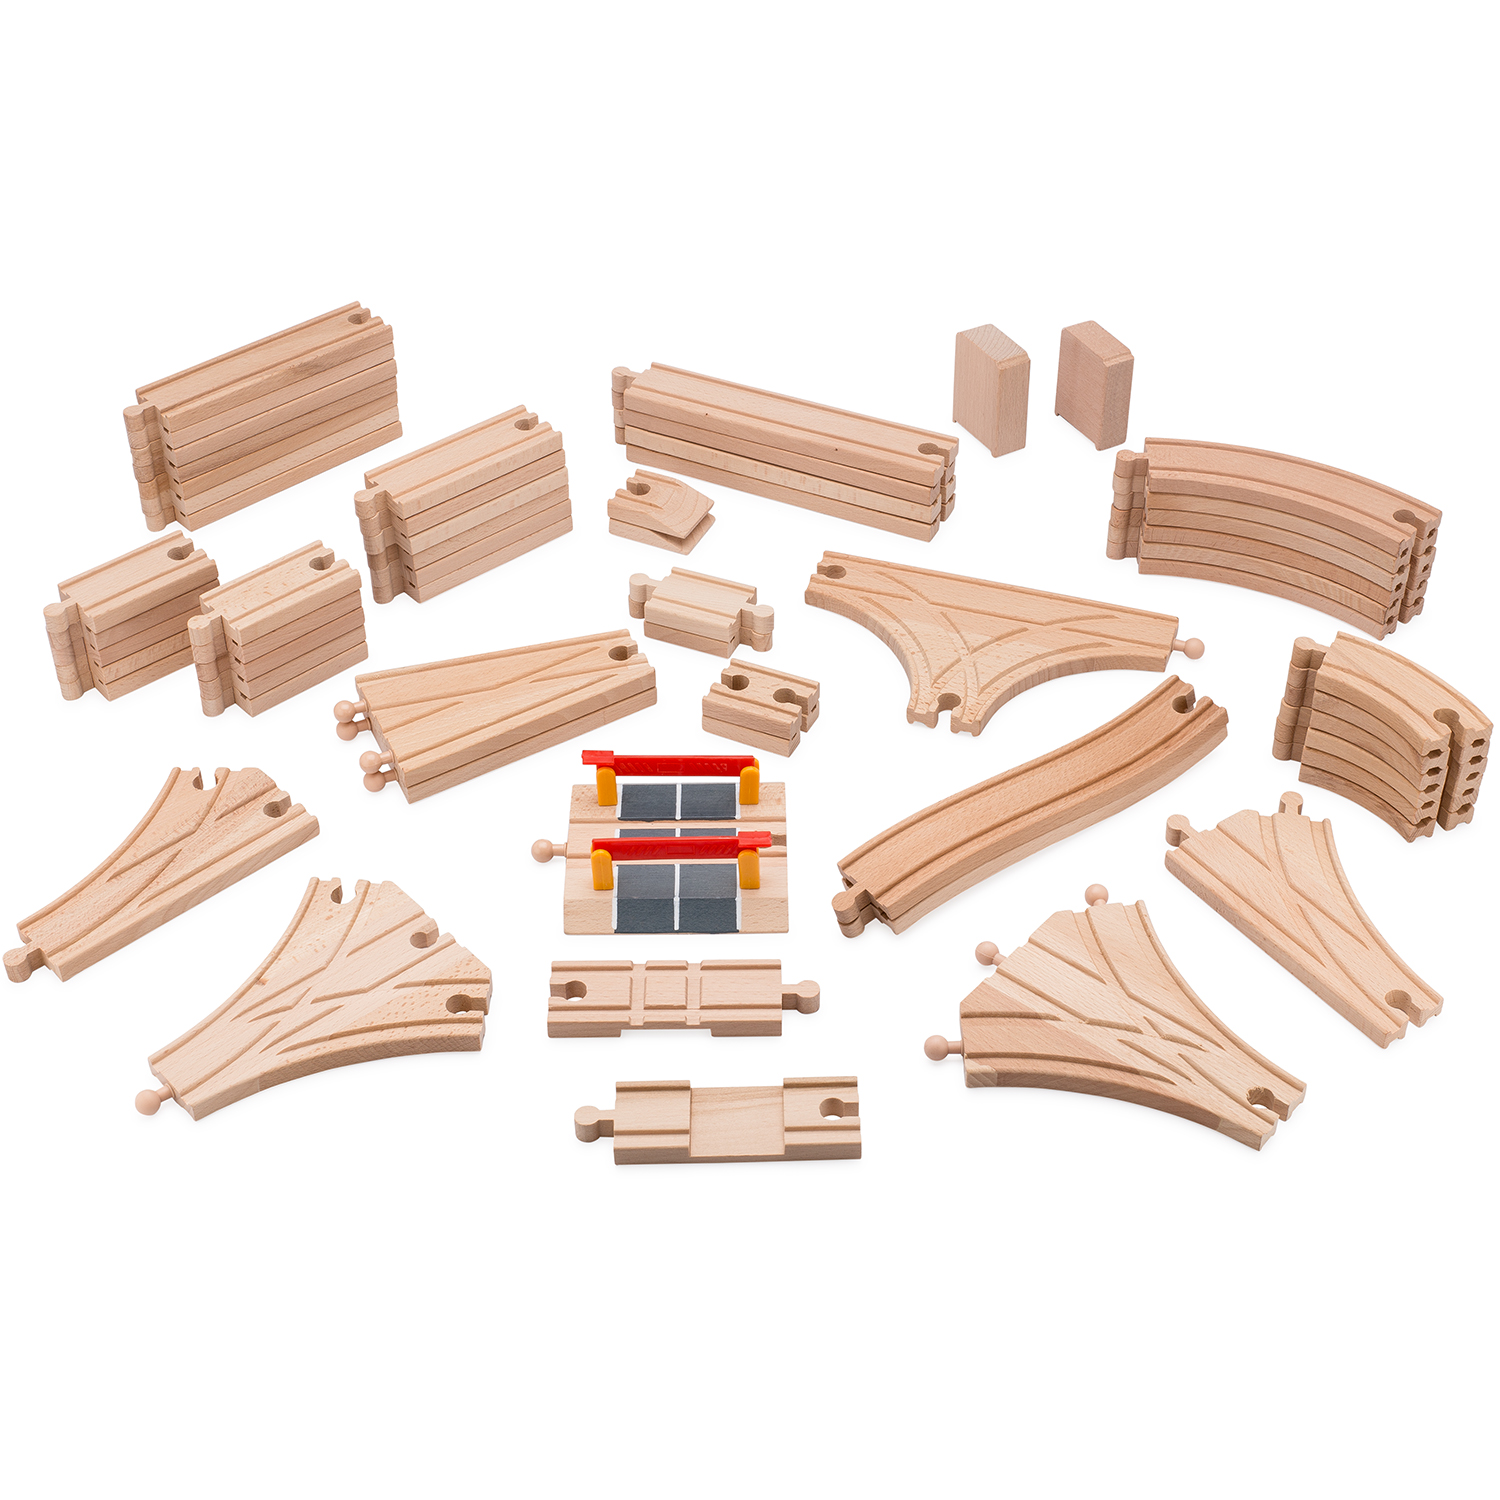 Wooden Train Tracks Playbees Wooden Train Track Toy Set 59 Pieces Compatible W